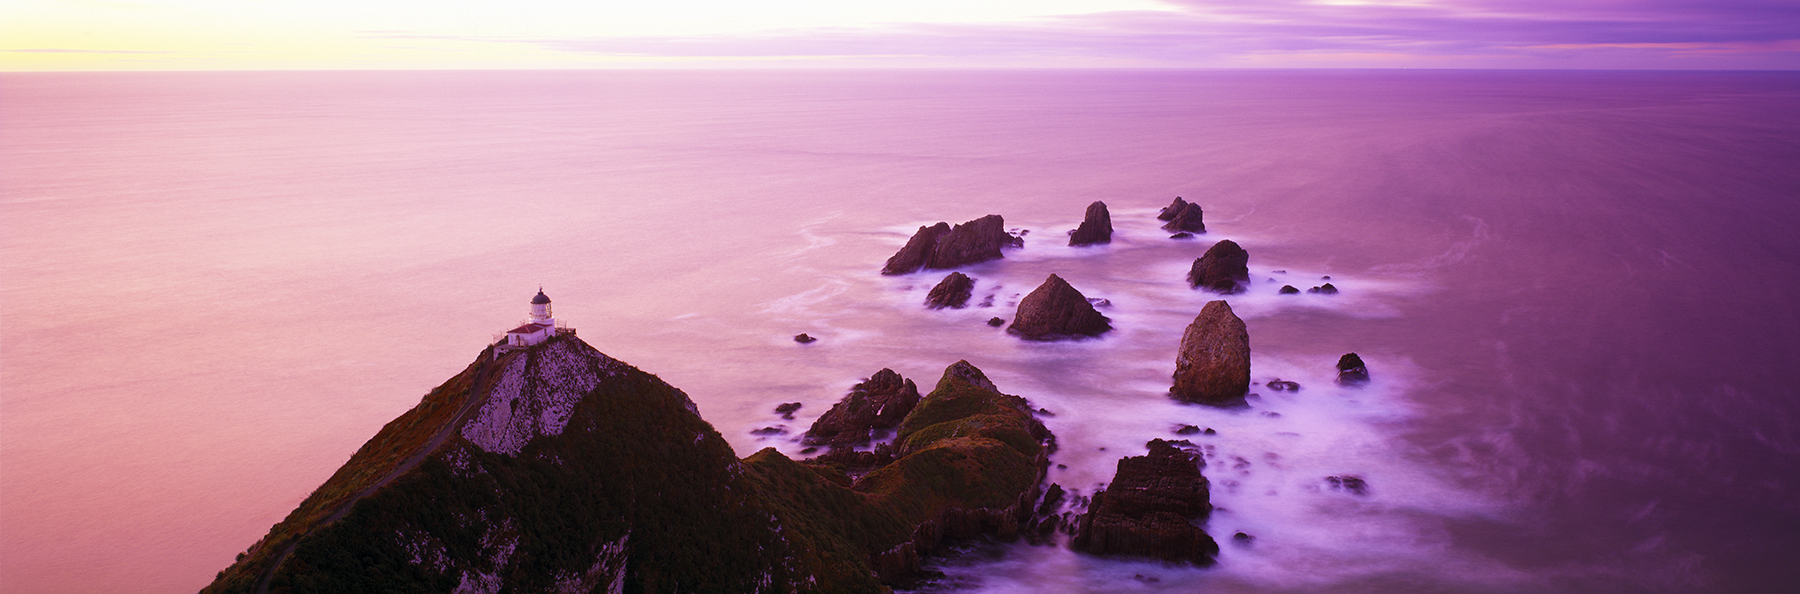 Nugget Point, Catlins, New Zealand. A Limited Edition Fine Art Landscape Photograph by Richard Hume